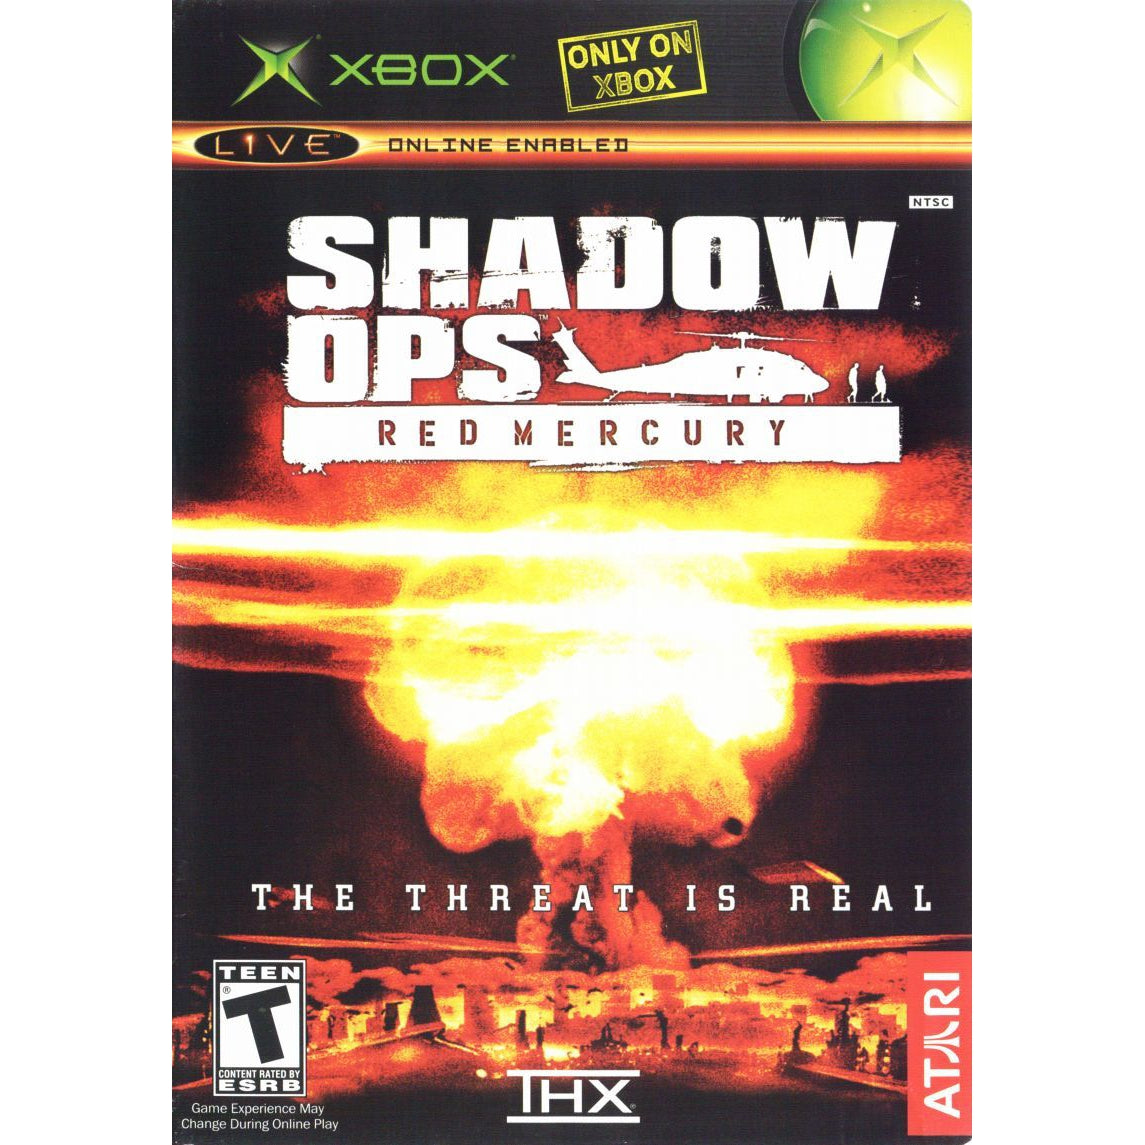 Shadow Ops: Red Mercury - Microsoft Xbox Game Complete - YourGamingShop.com - Buy, Sell, Trade Video Games Online. 120 Day Warranty. Satisfaction Guaranteed.